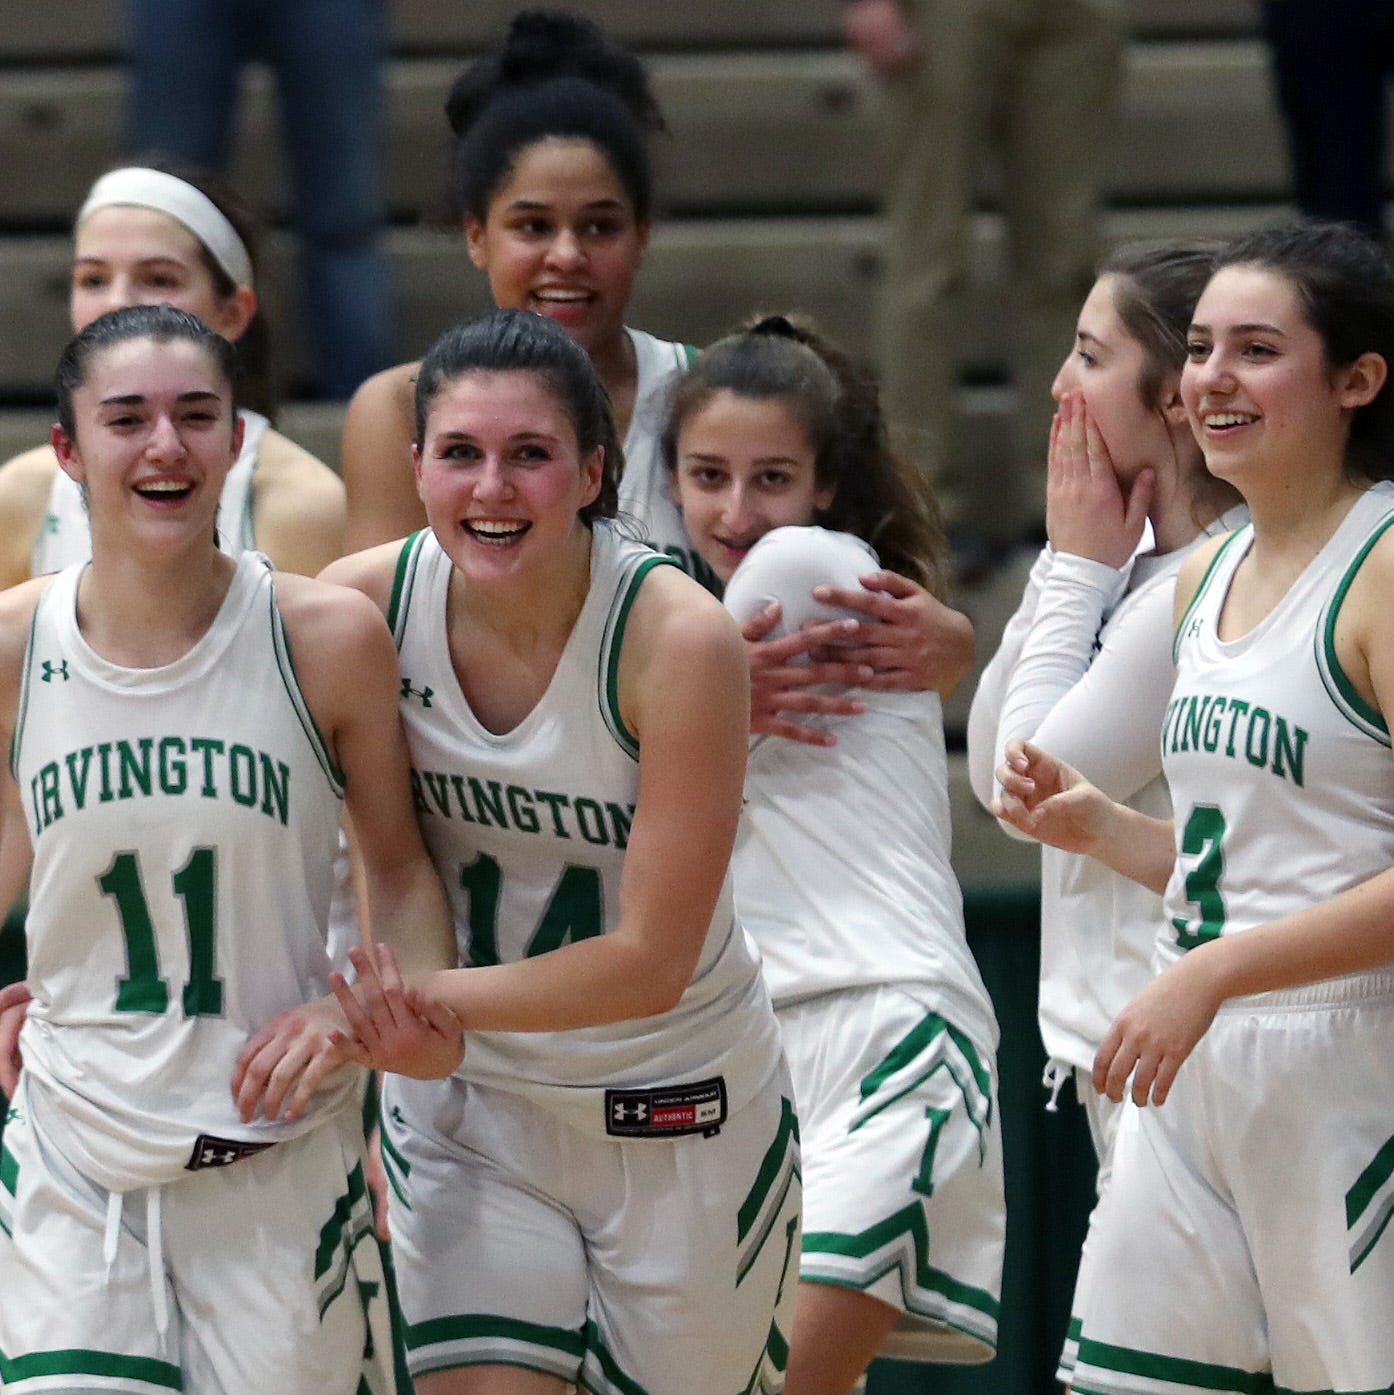 Girls basketball: Irvington finds a way to beat South Jefferson in 'chaotic' semifinal win